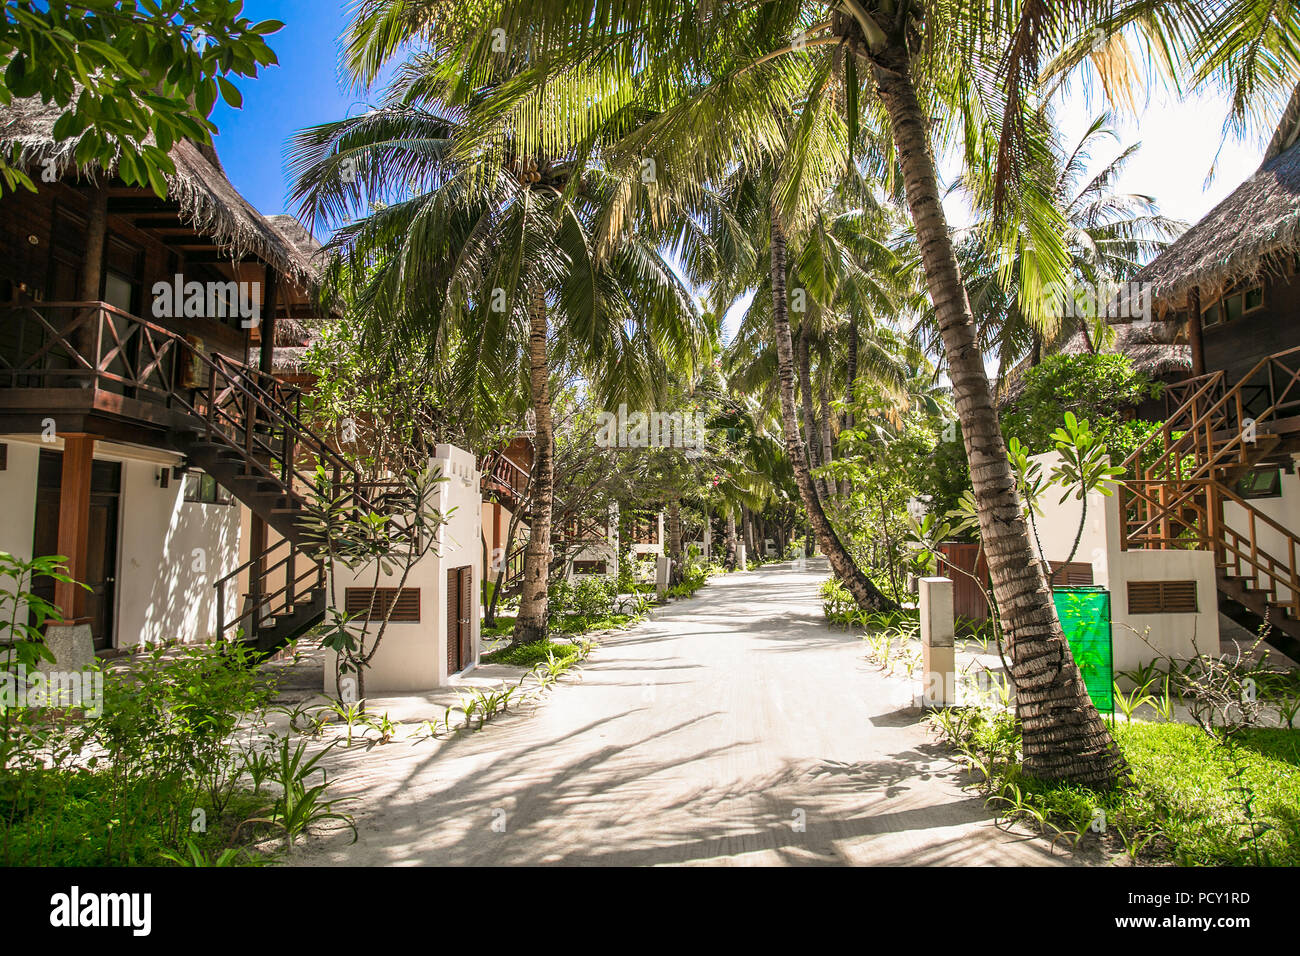 2017: Luxurious Houses In A Natural Setting On Olhuveli Island On Jan 10,  2018. Maldives.